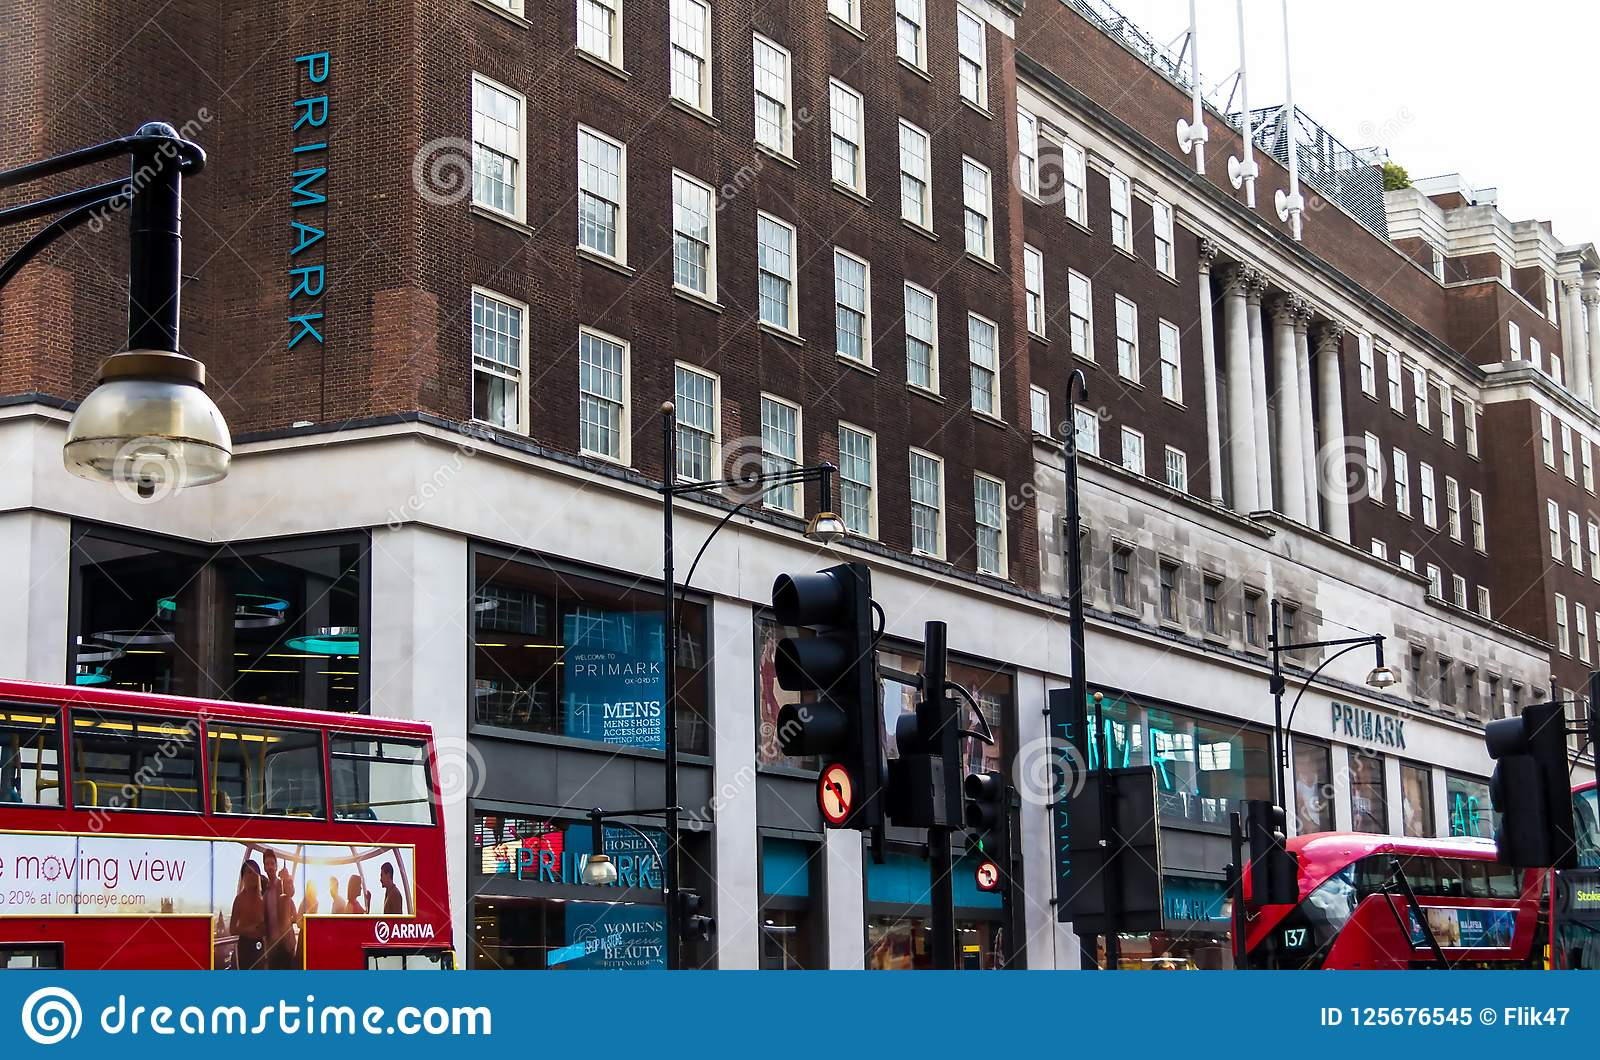 Primark Clothing Store On Oxford Street In London